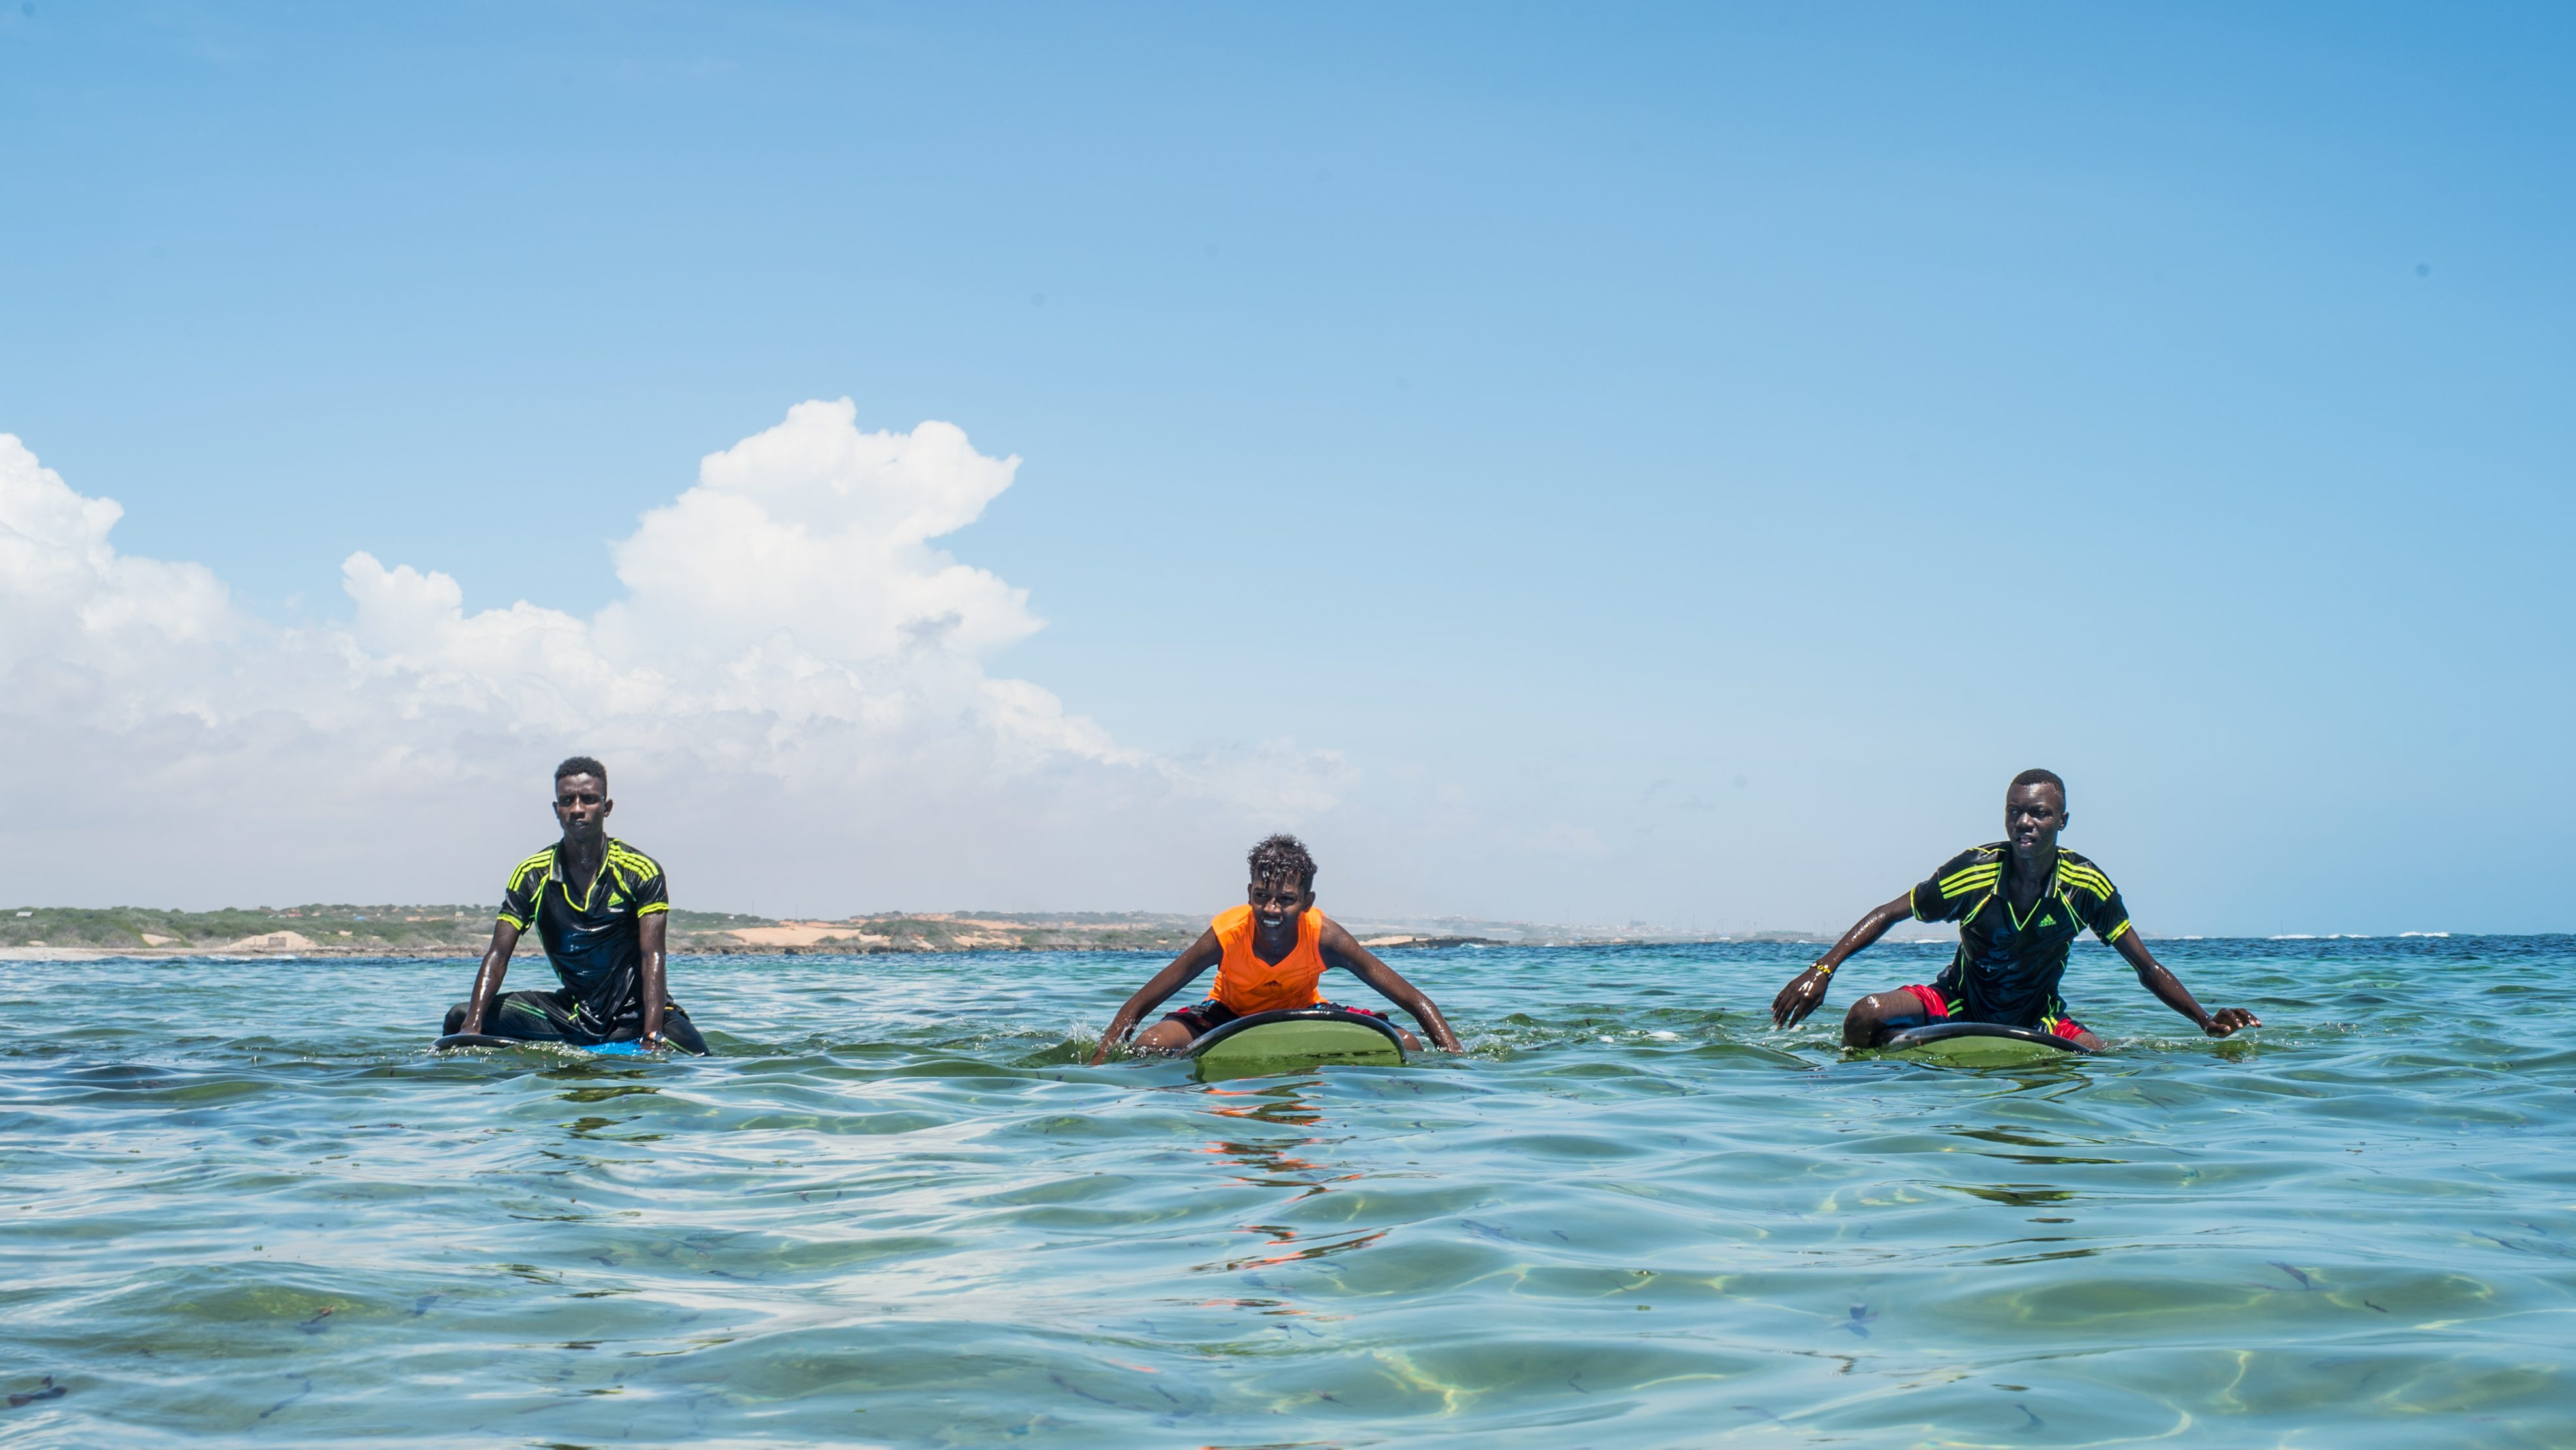 Surfing And Yoga On The Beach Is Helping Heal Victims Of Somalia S War